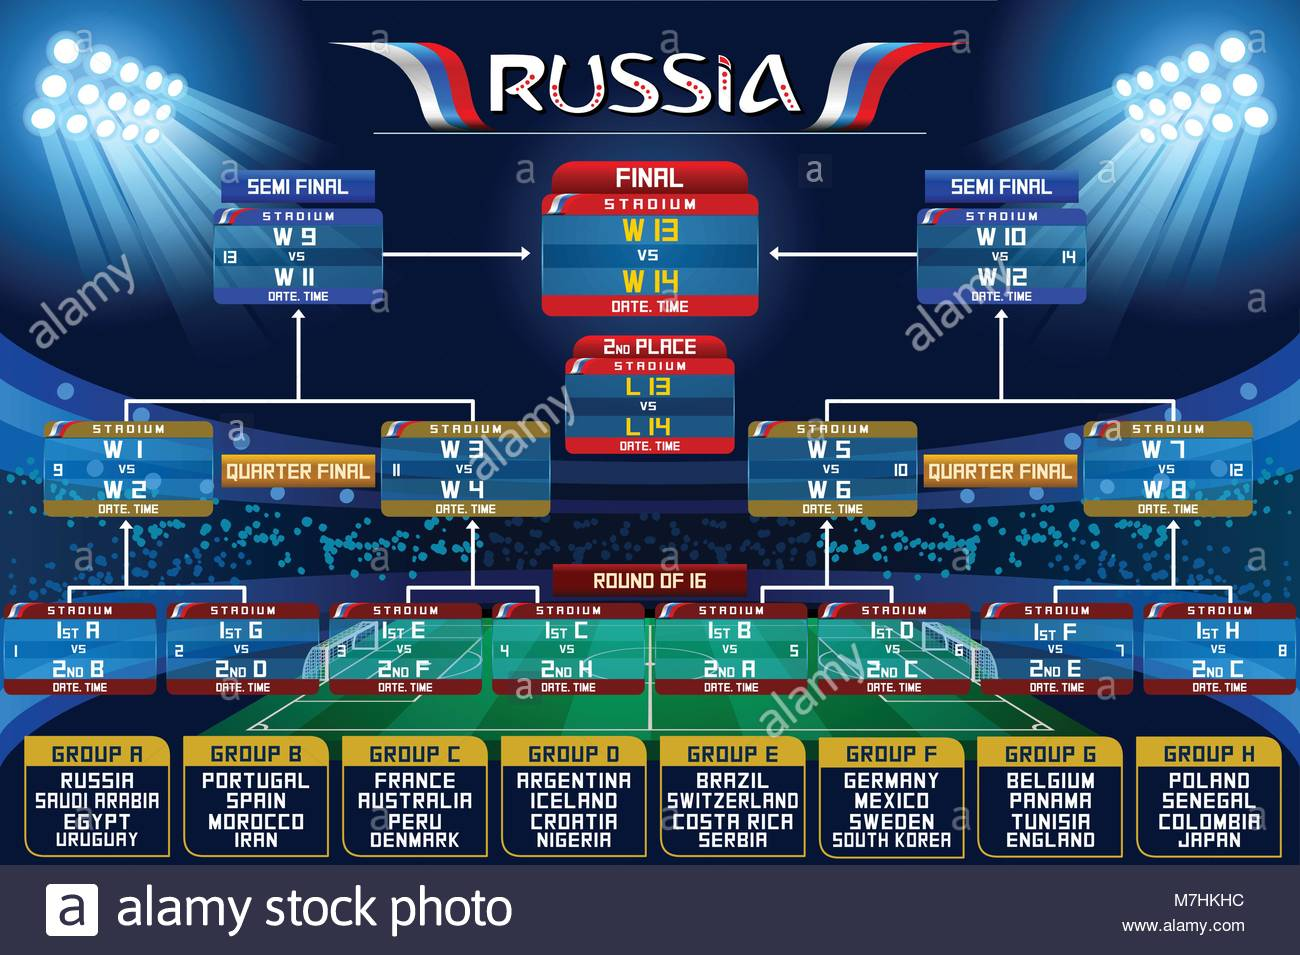 Image Result For Russia Vs Egypt